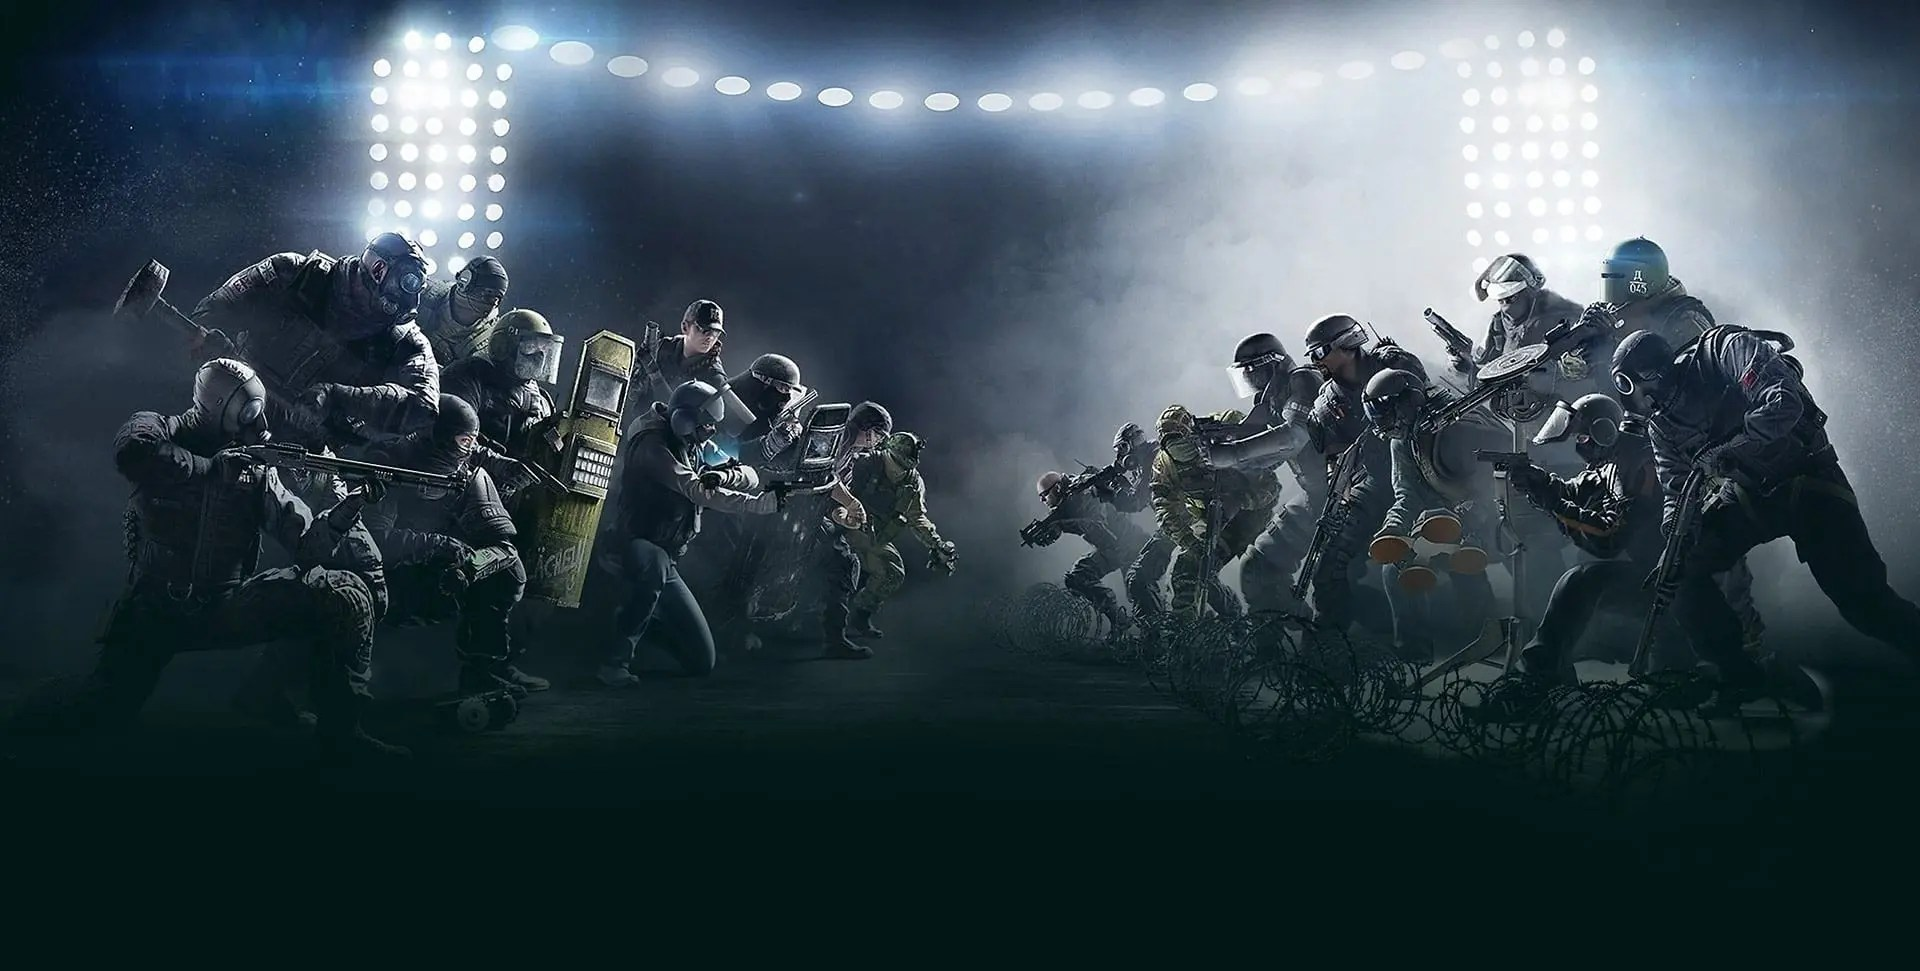 A promotional image featuring game characters from Rainbow Six Siege